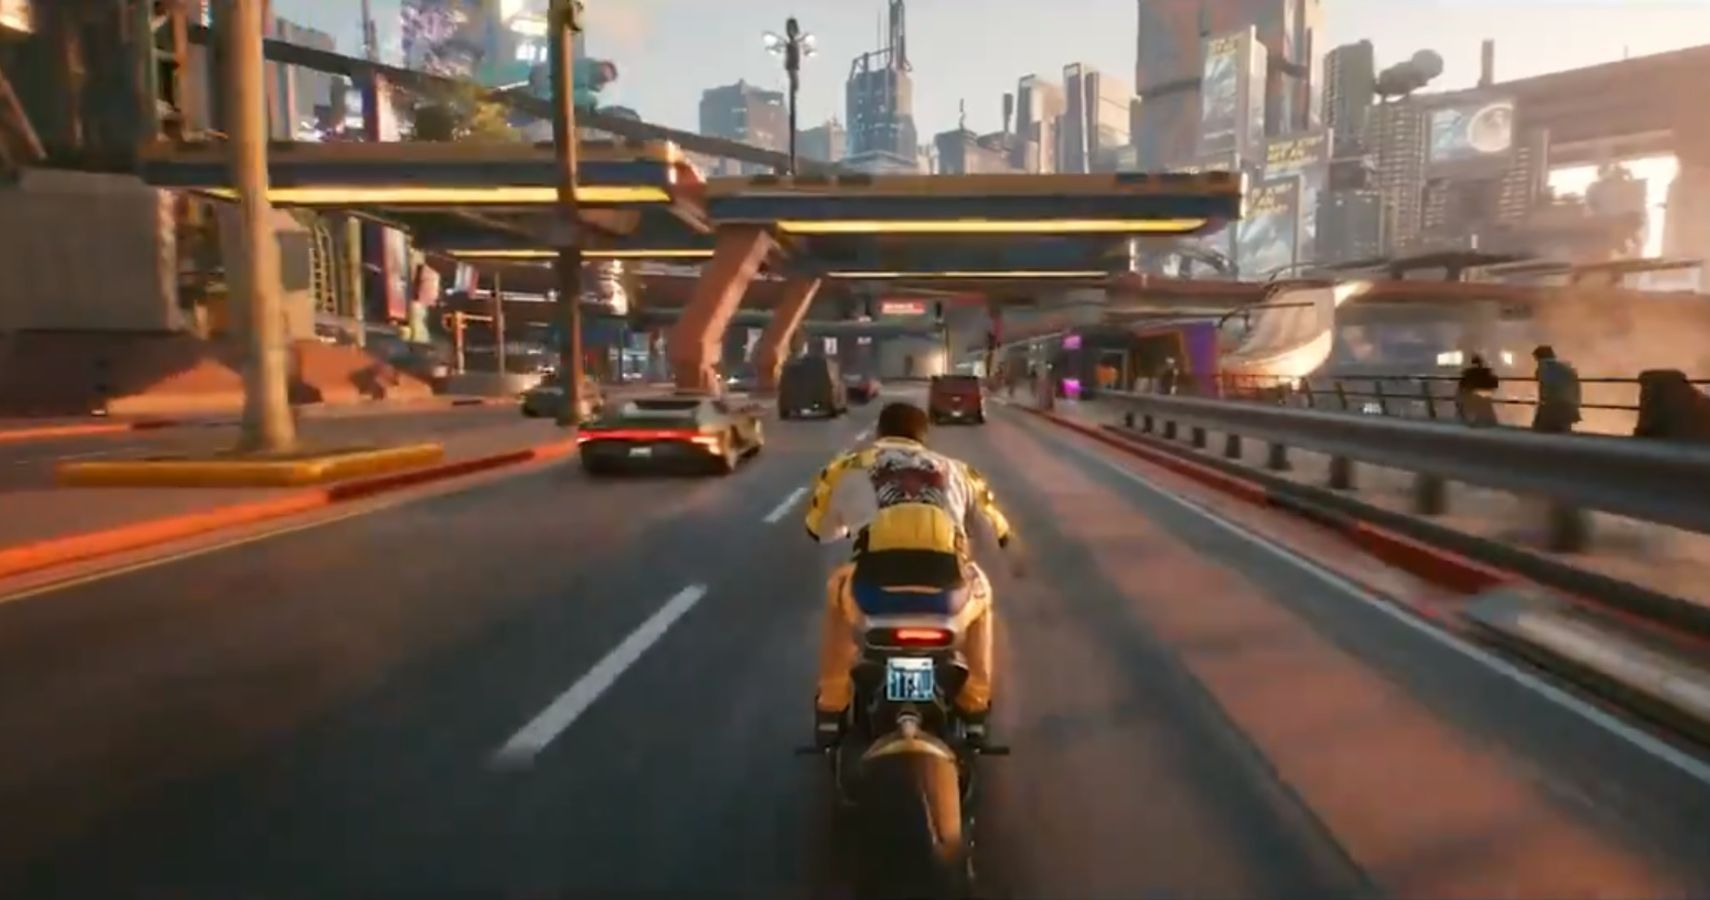 Keanu Reeves Owns A Motorbike Company And Some Of His Bikes Are In Cyberpunk 2077